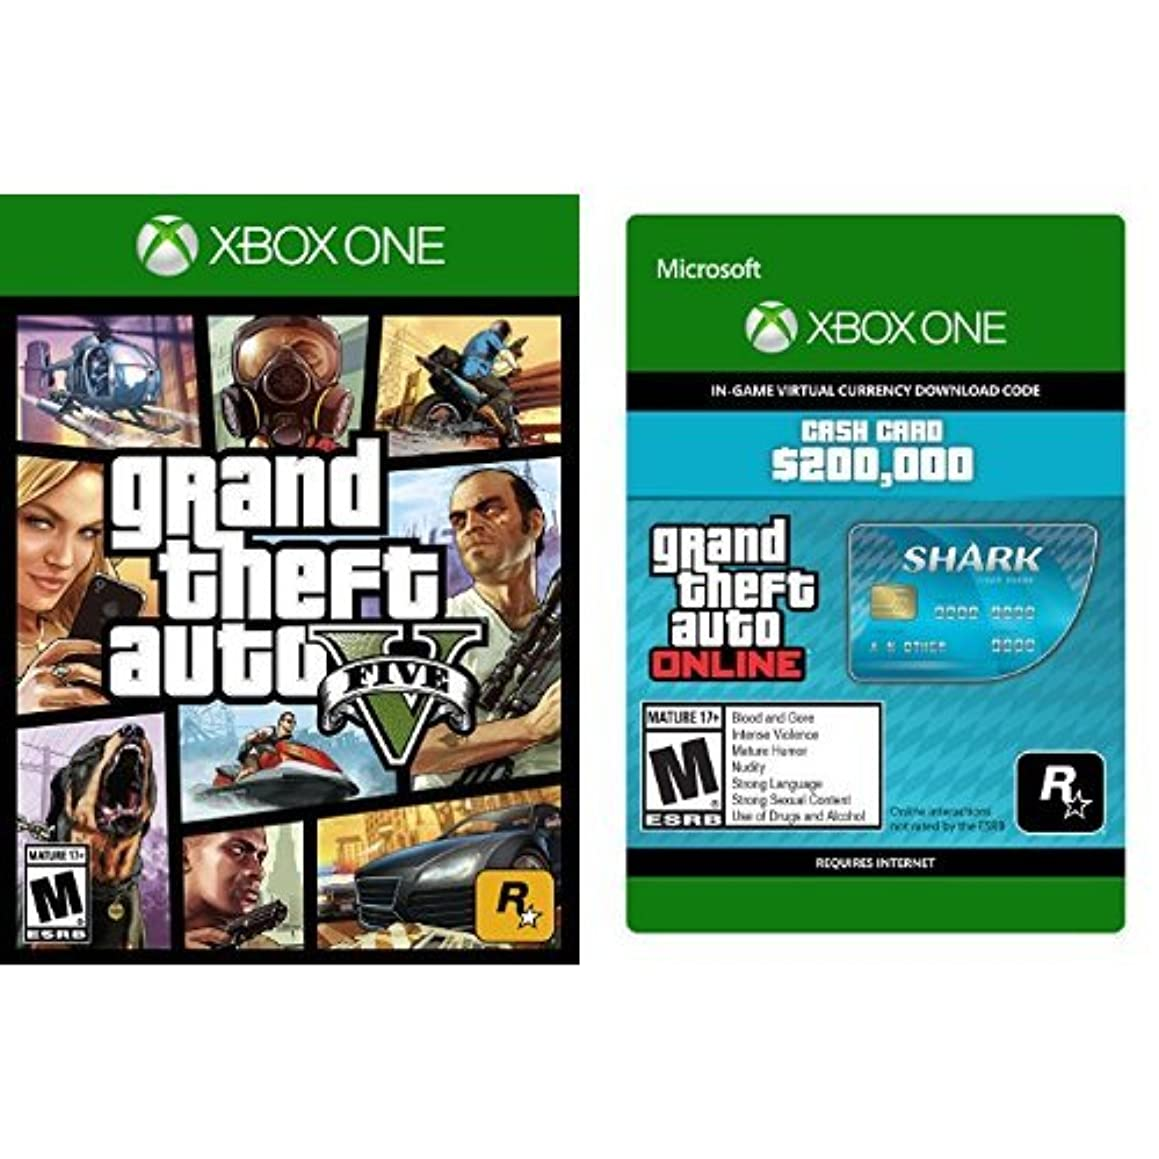 Grand Theft Auto V - Xbox One + Grand Theft Auto V - Tiger Shark Cash Card - Xbox One [Digital Code] bundle